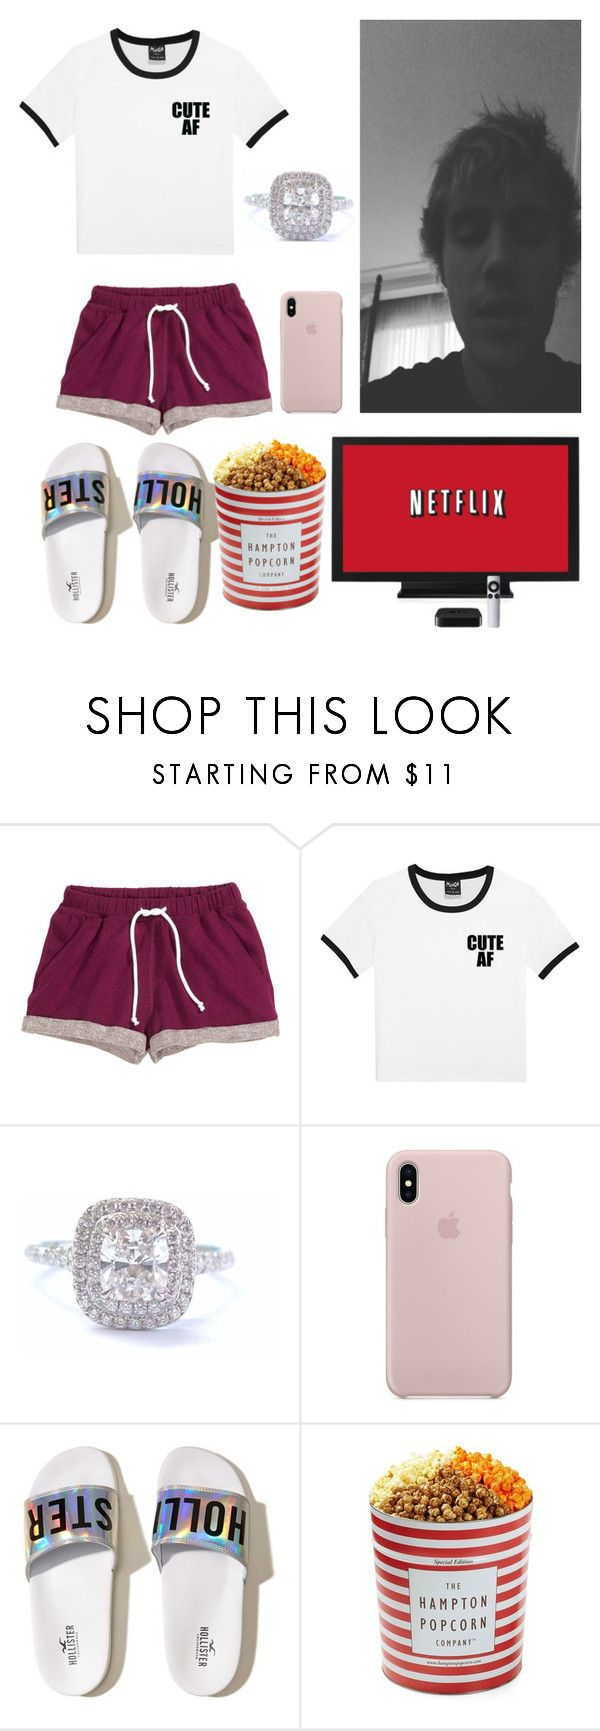 """Sem título #486"" by isabelalalbarelli on Polyvore featuring H&M, Tiffany & Co., Hollister Co. e The Hampton Popcorn Company"